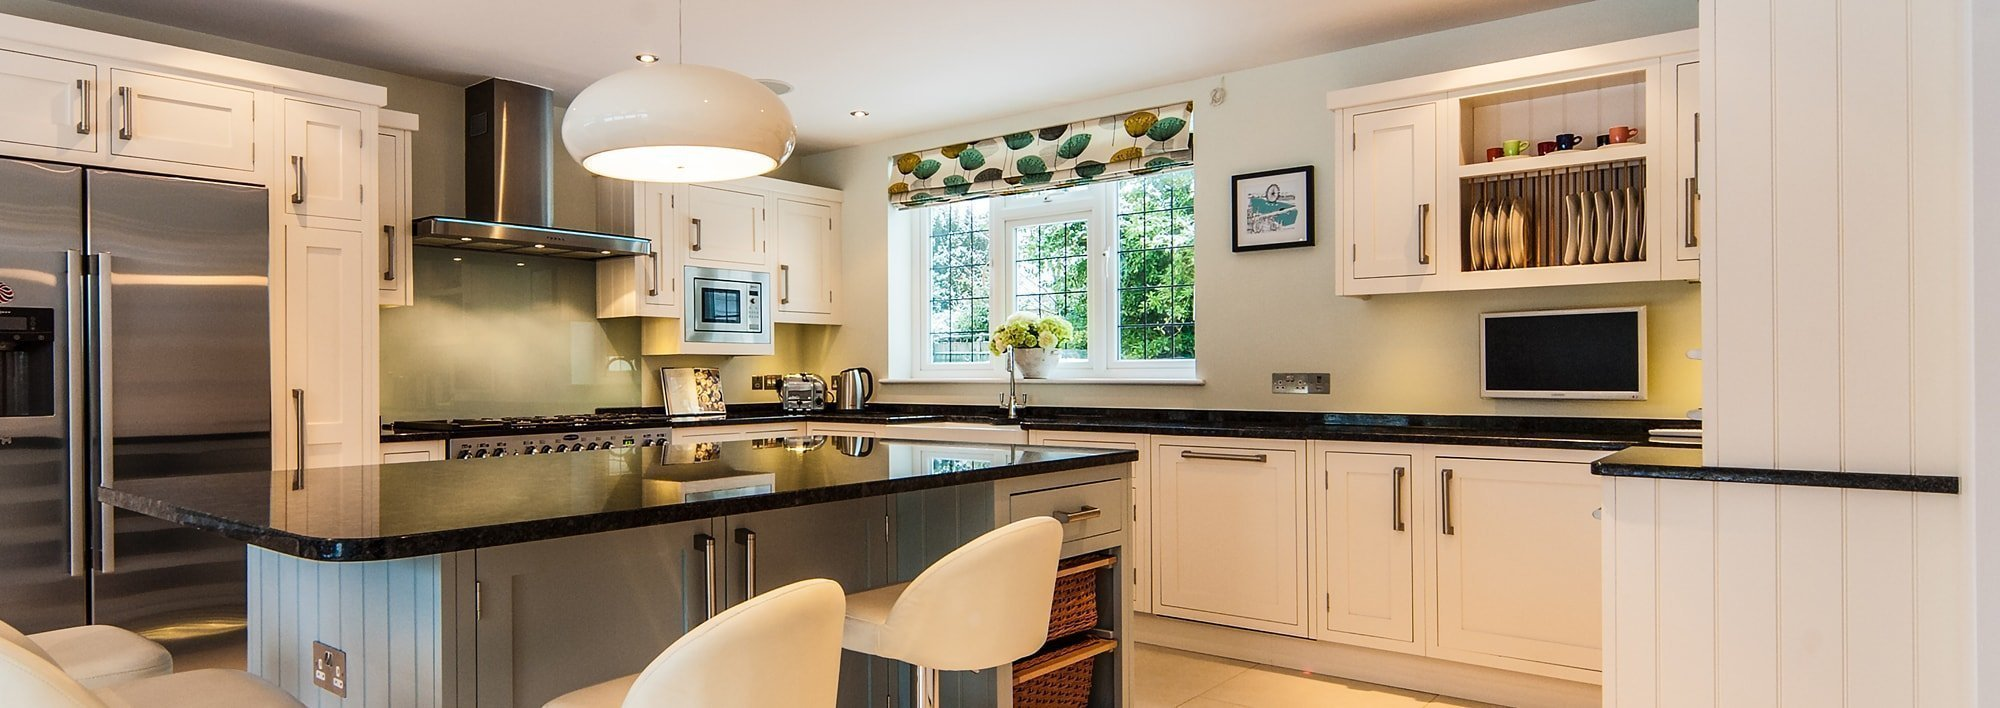 steel grey granite kitchen worktops cuckfield west_sussex_yew_tree_kitchens_110424a_kitchen header header-min